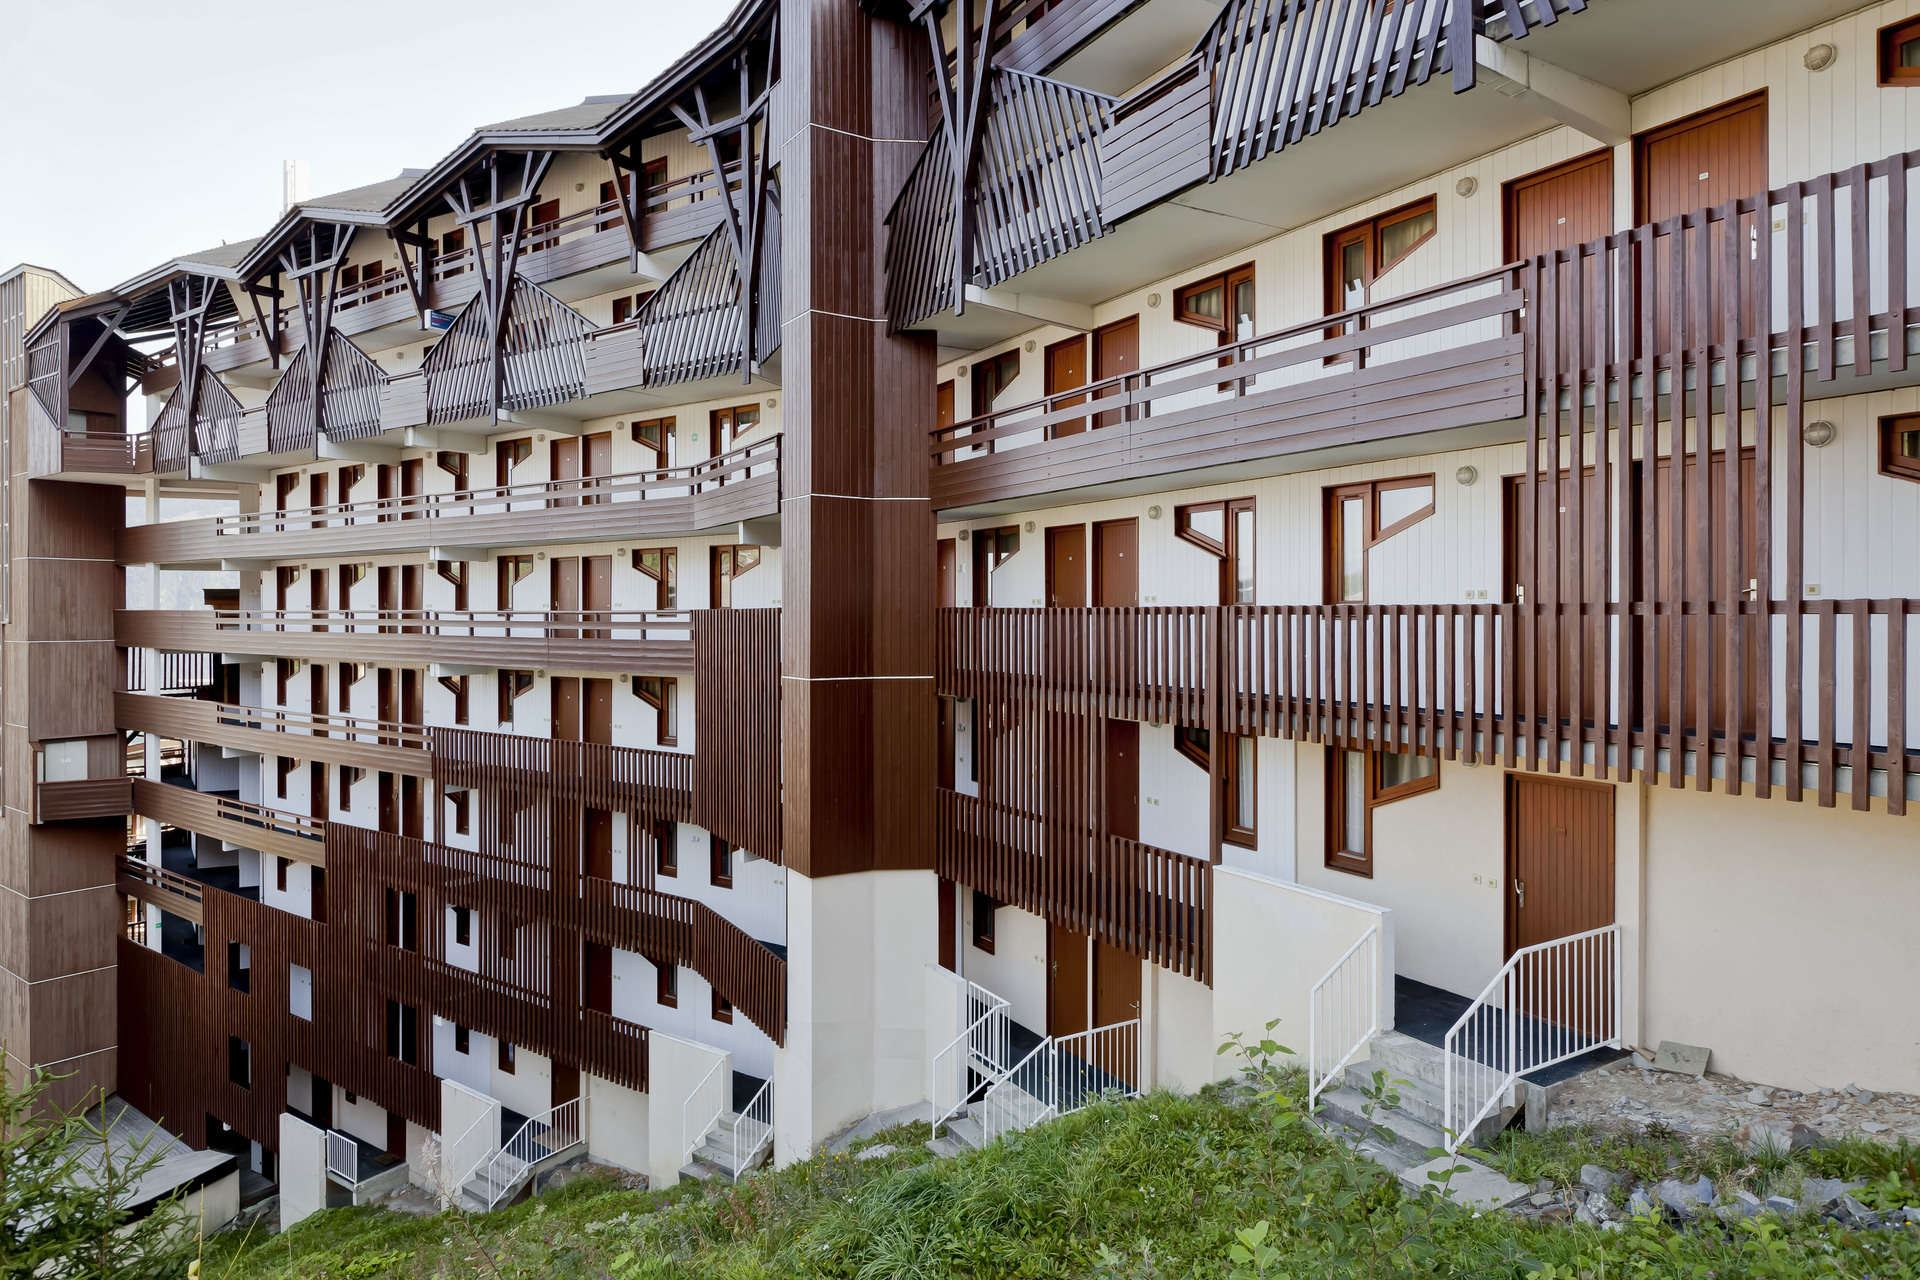 2 rooms, 4 people ski-in ski-out / Grand bois A 308 (Mountain)